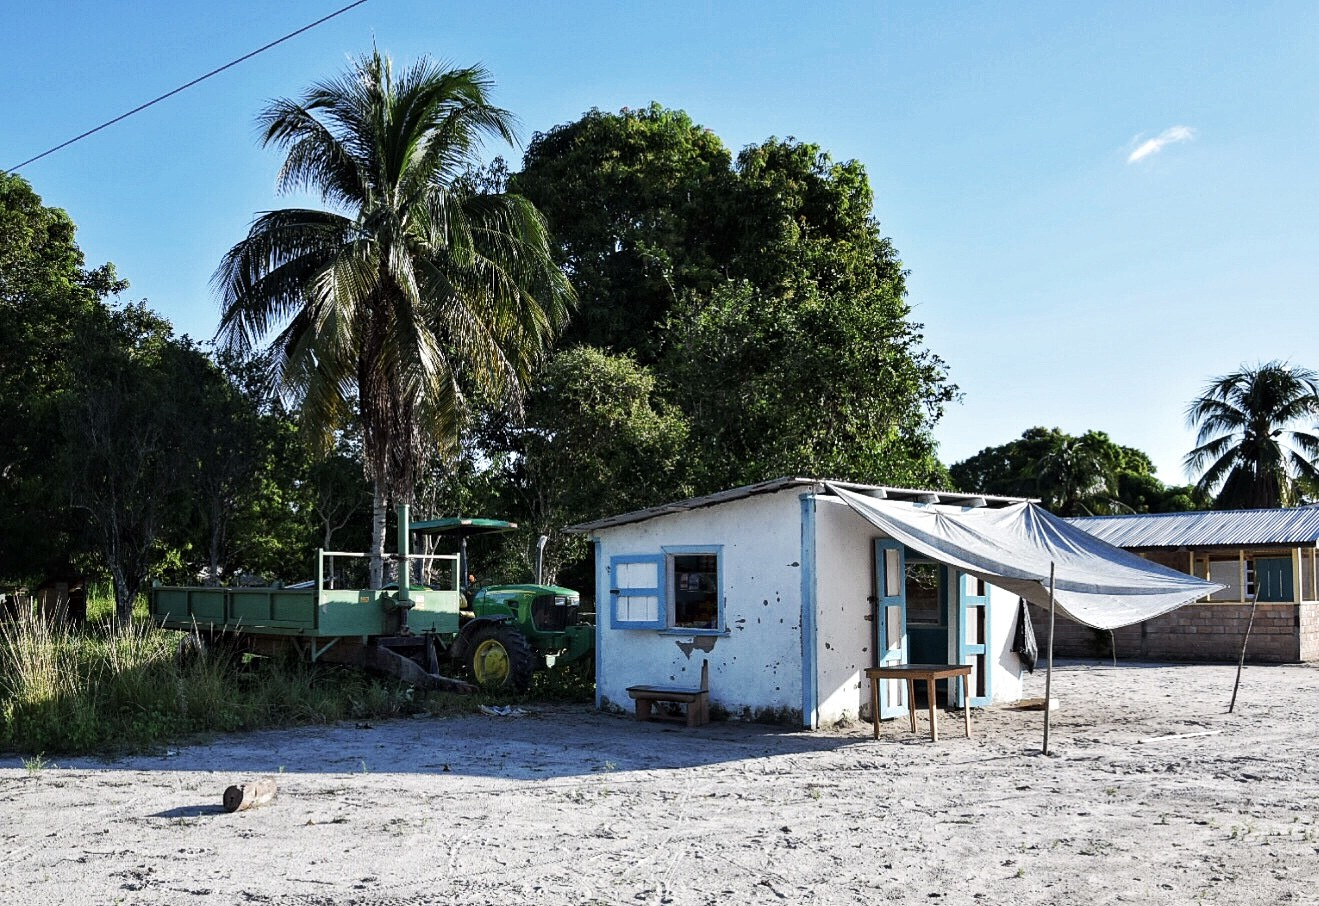 Guyana, submitted by Claudia Tavani from My Adventures Across The World